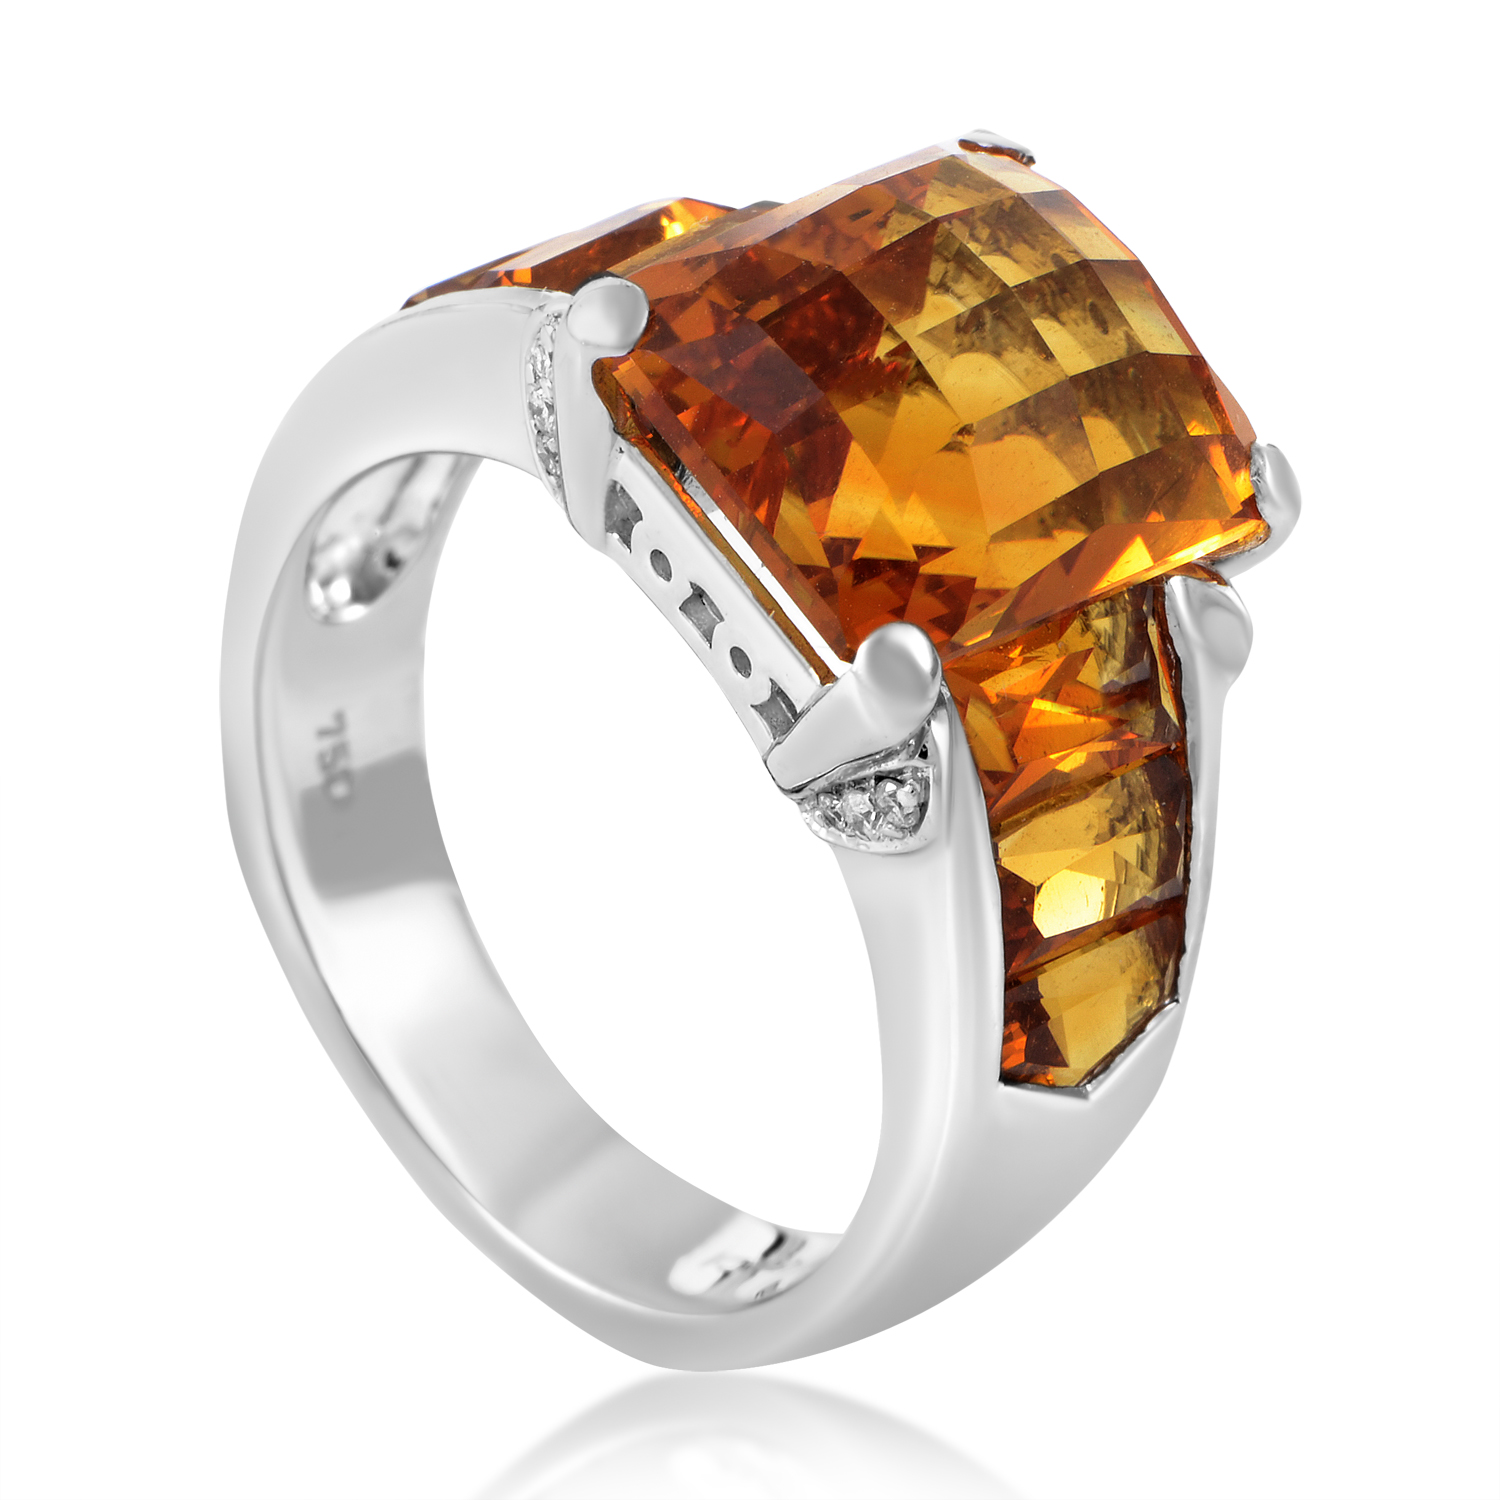 Women's 18K White Gold Diamond & Citrine Ring 12294